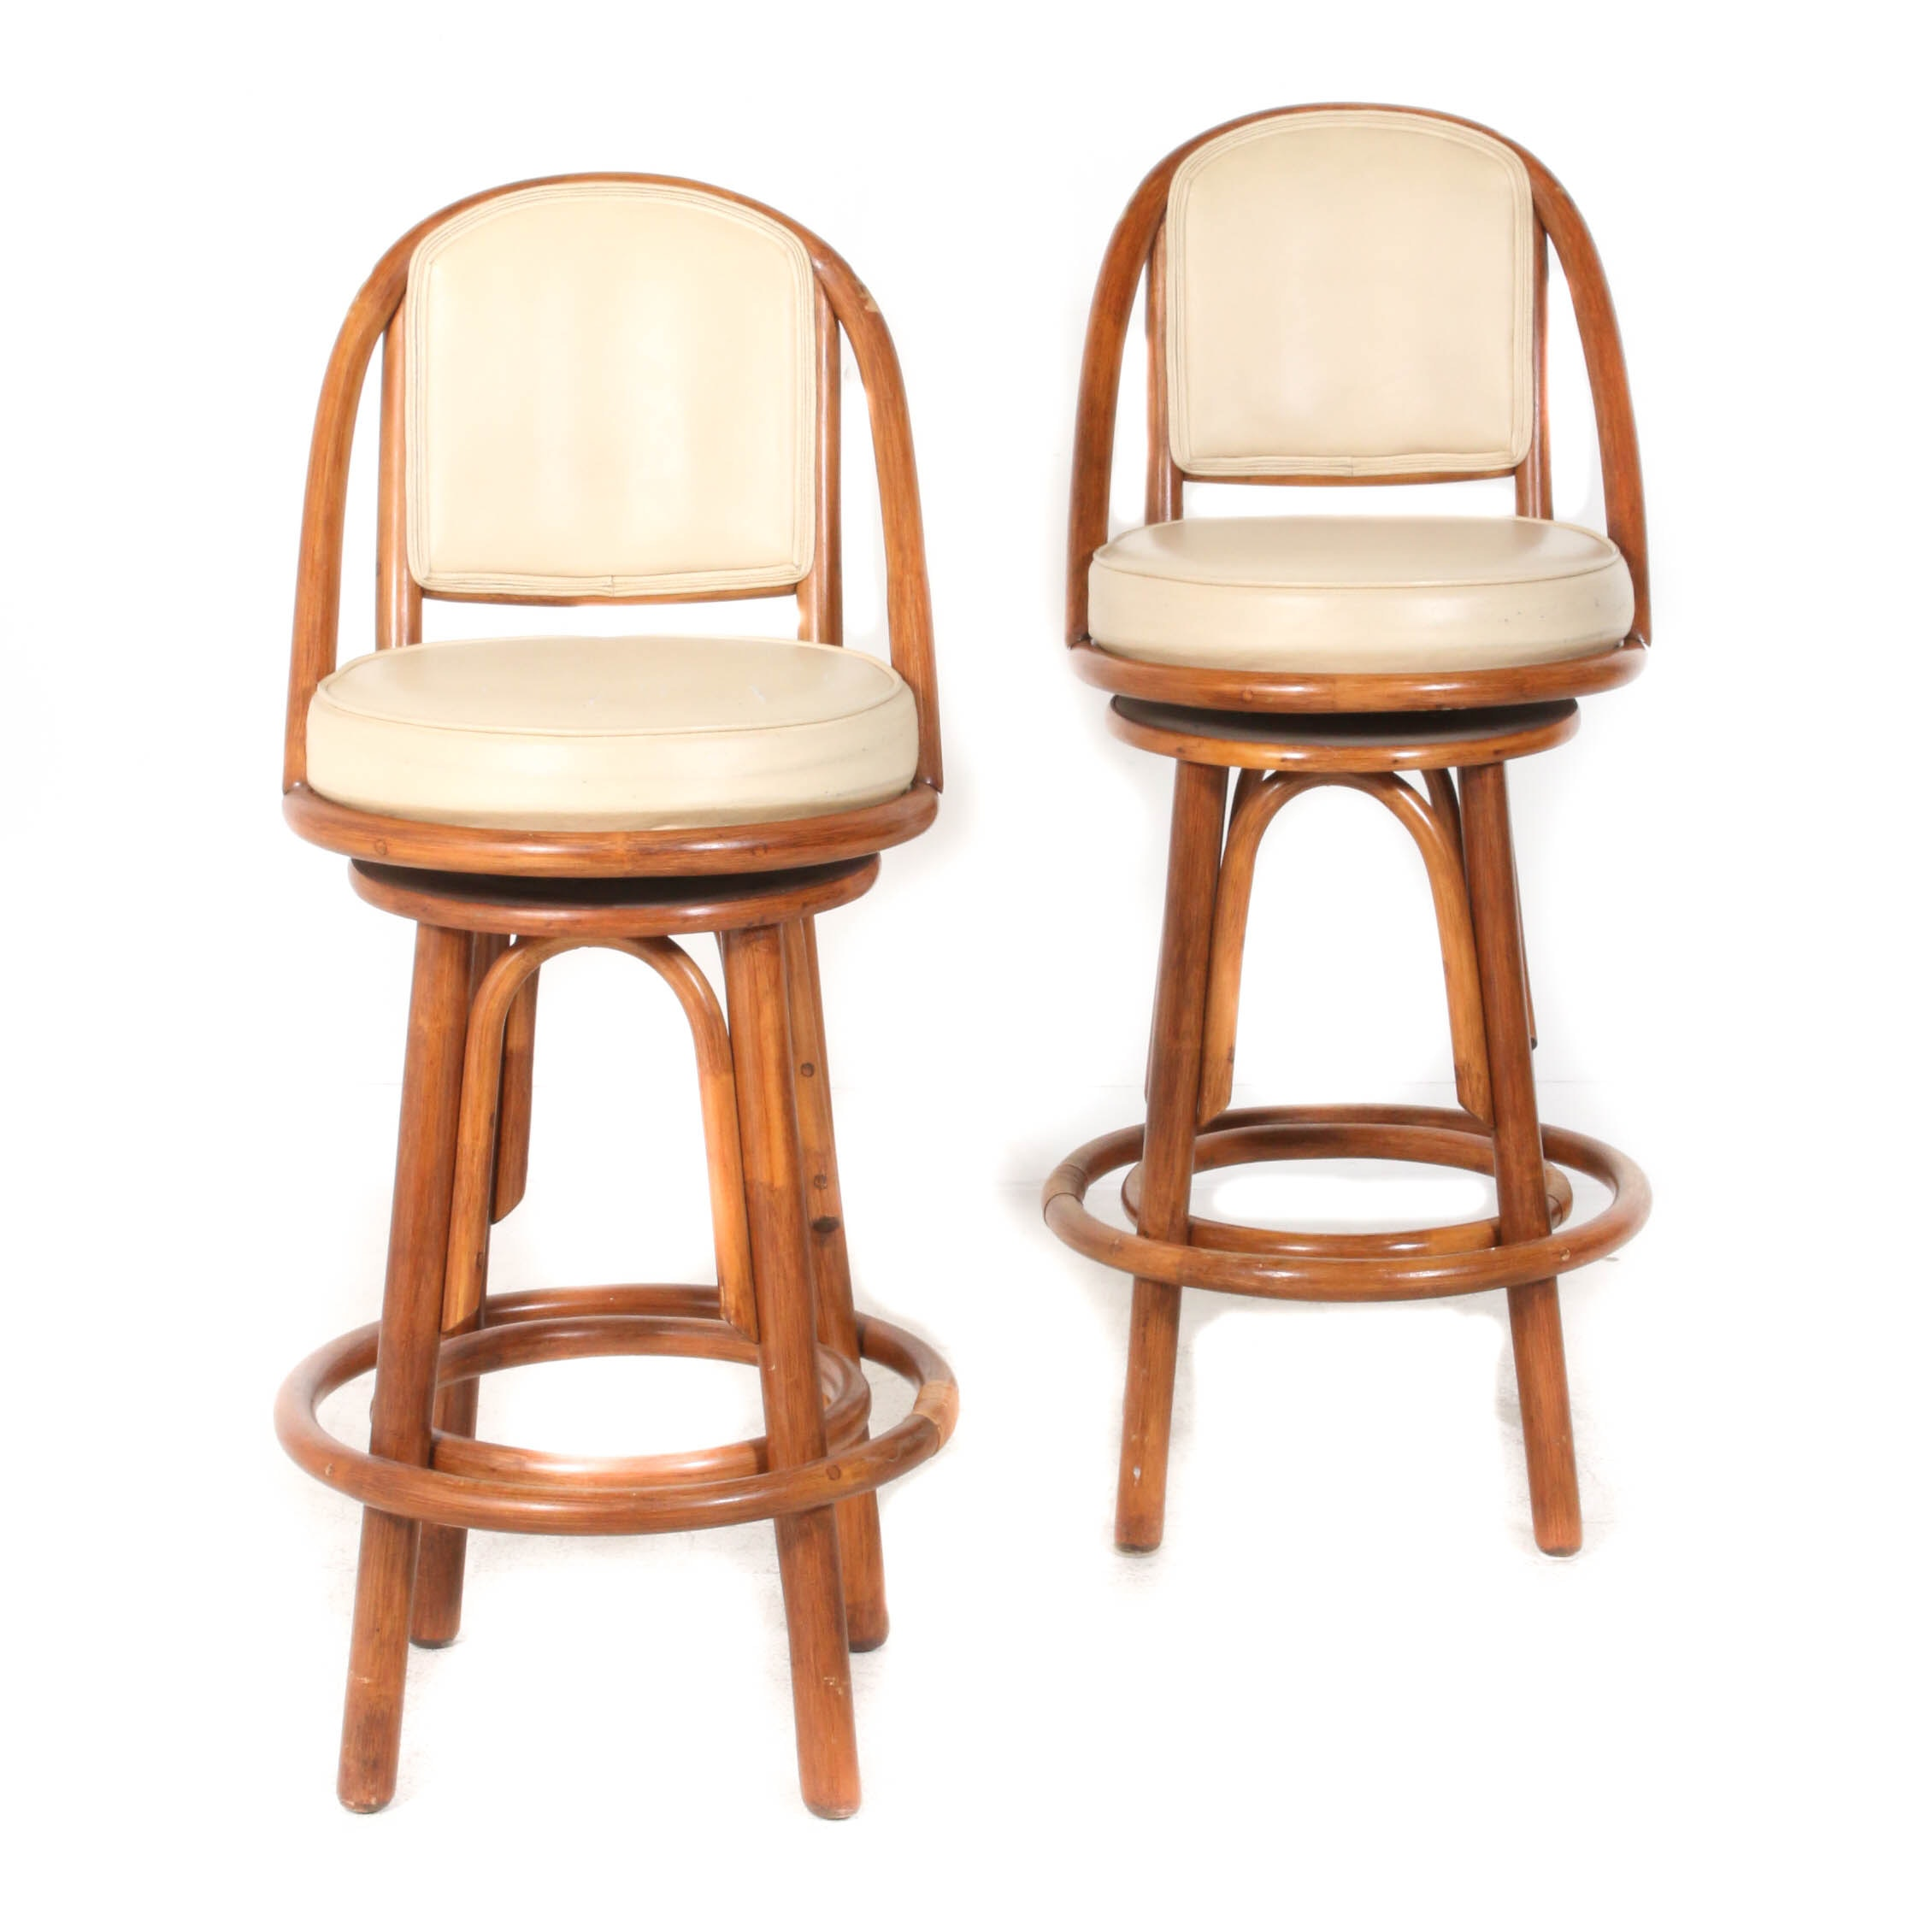 Contemporary Faux Leather and Wood Swivel Bar Stools